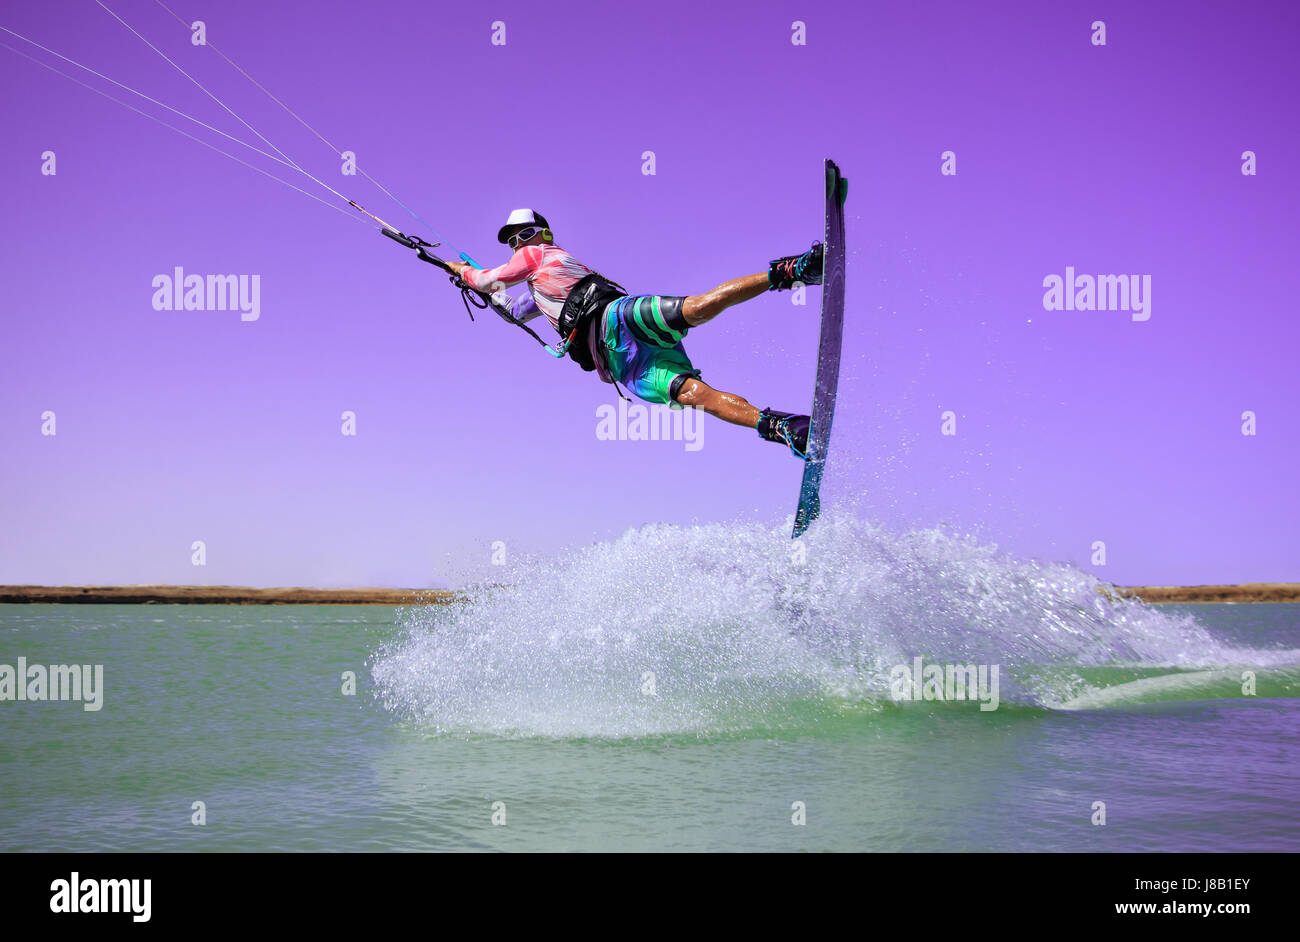 Professional kite boarding rider sportsman jumps high acrobatics kiteboarding raley trick  with huge water splash. - Stock Image